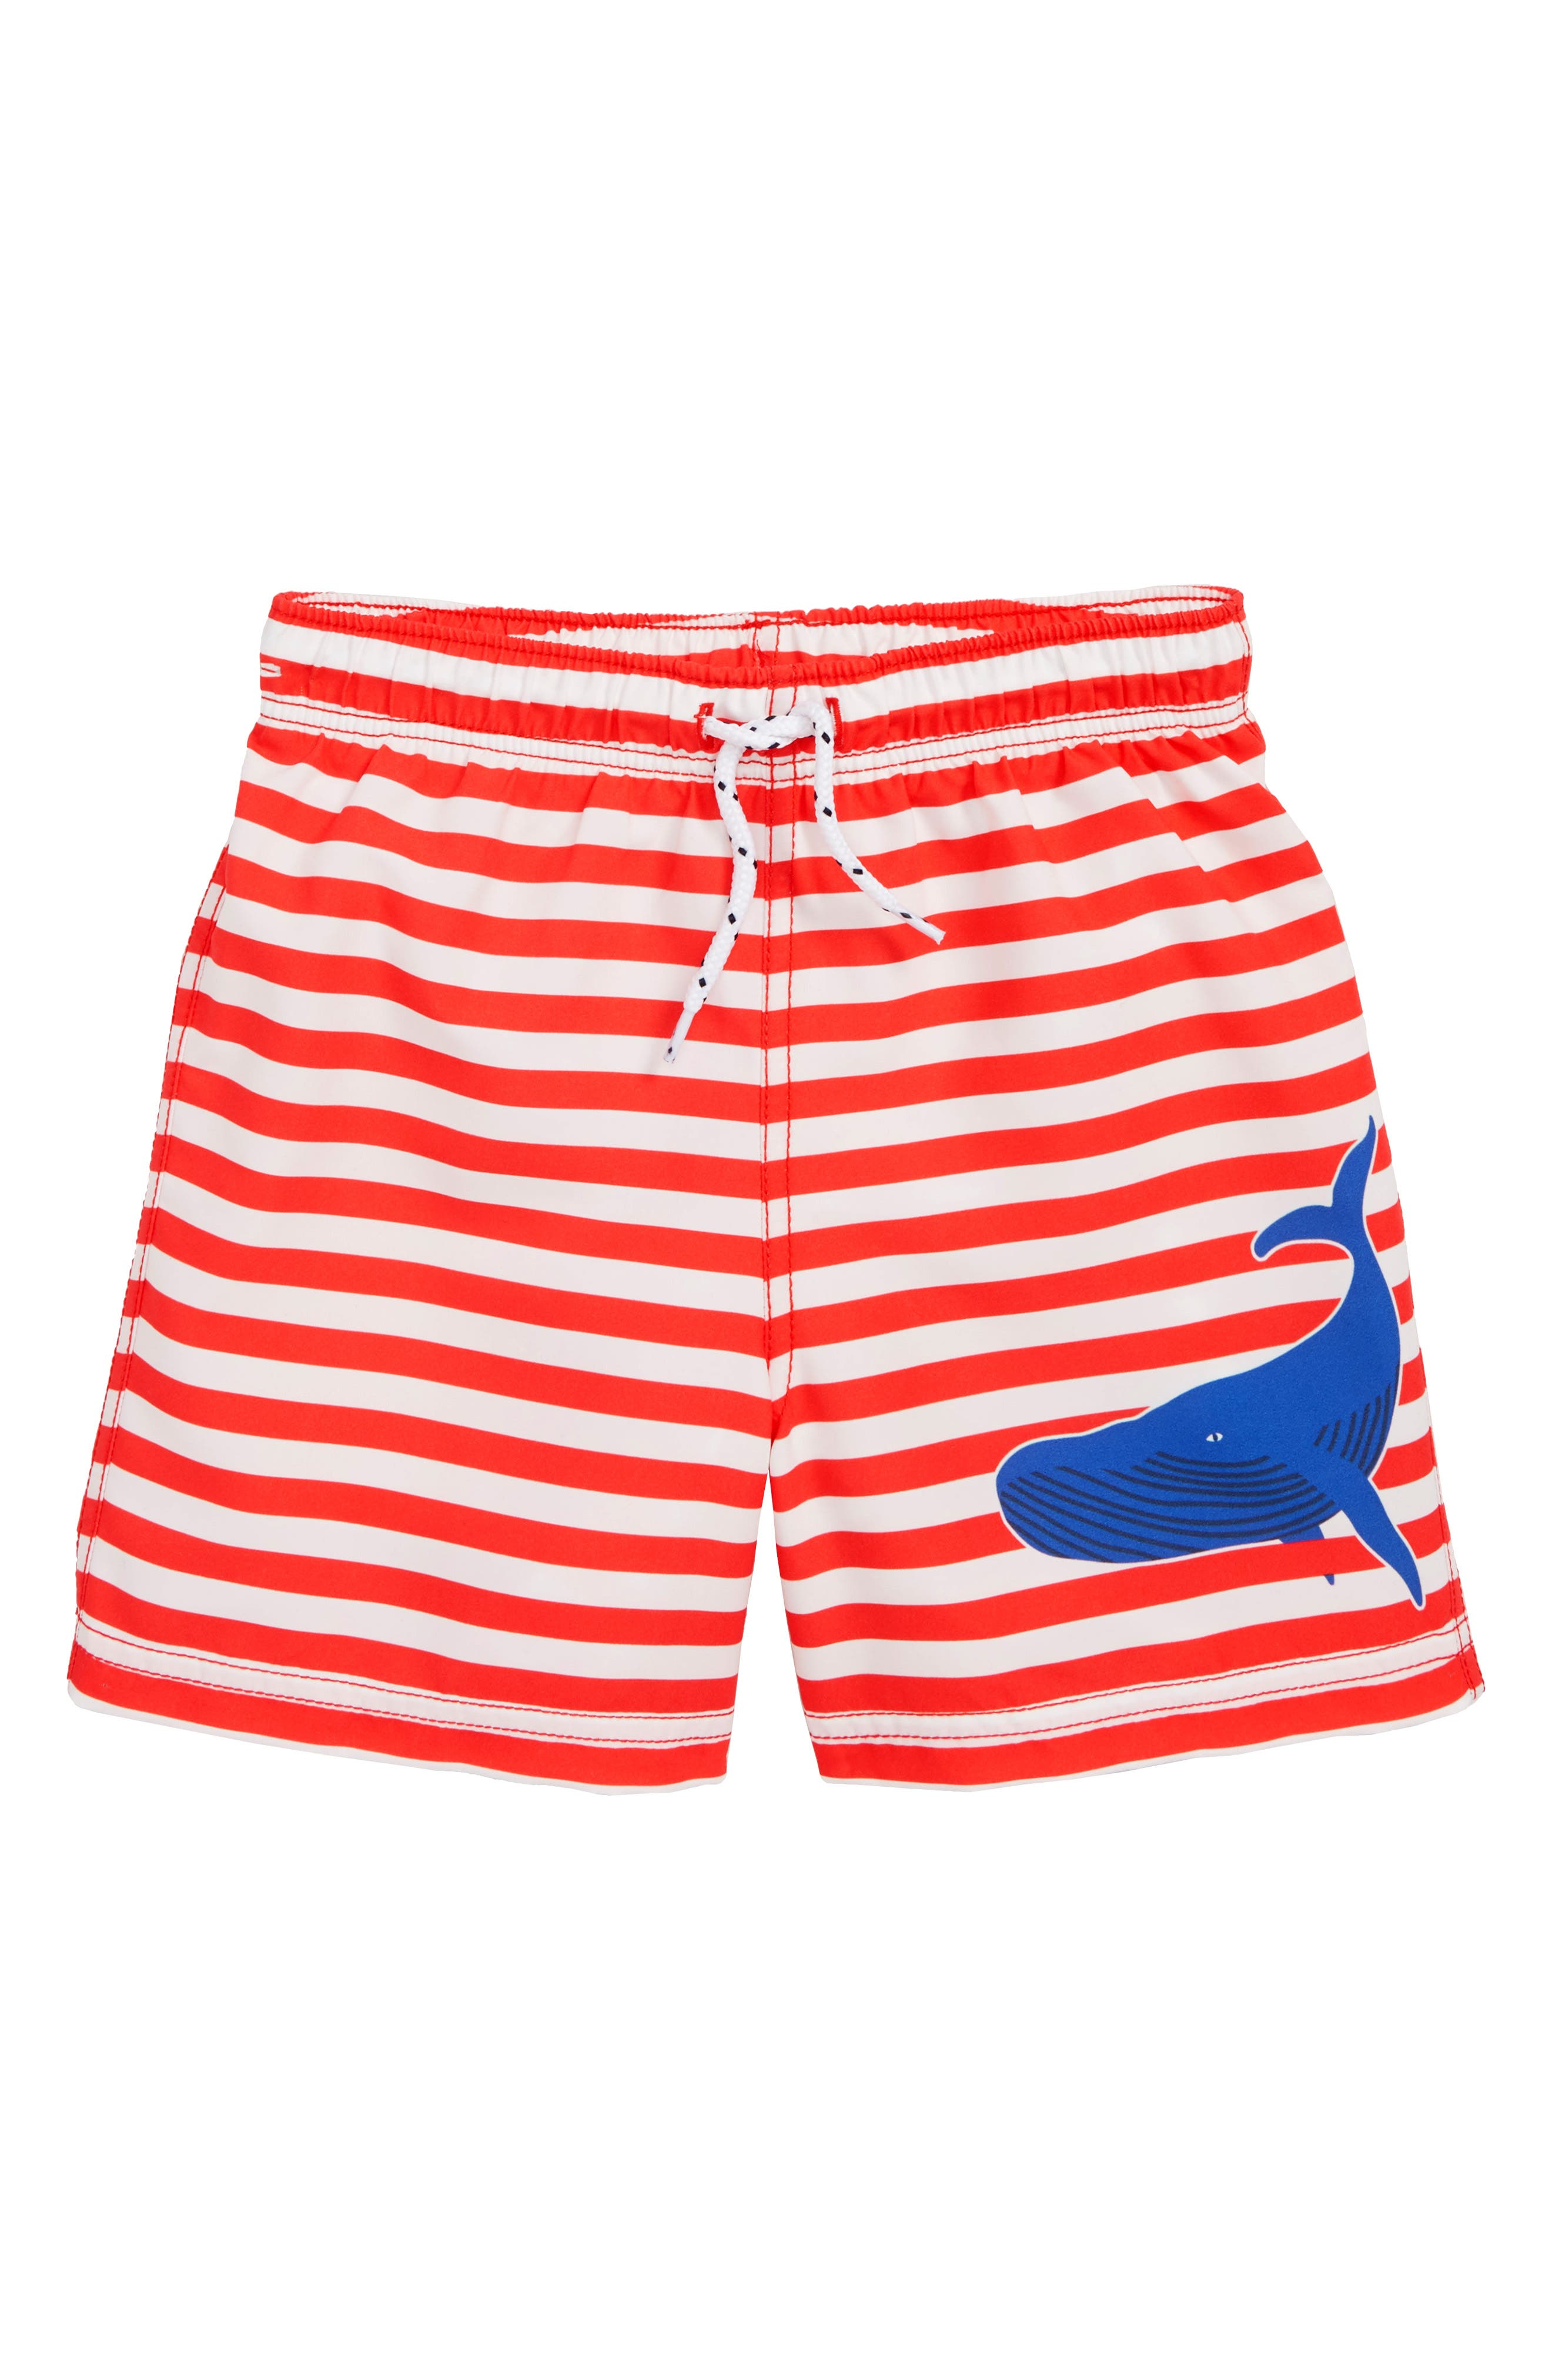 MINI BODEN Bathers Stripe Swim Trunks, Main, color, BEAM RED/ IVORY